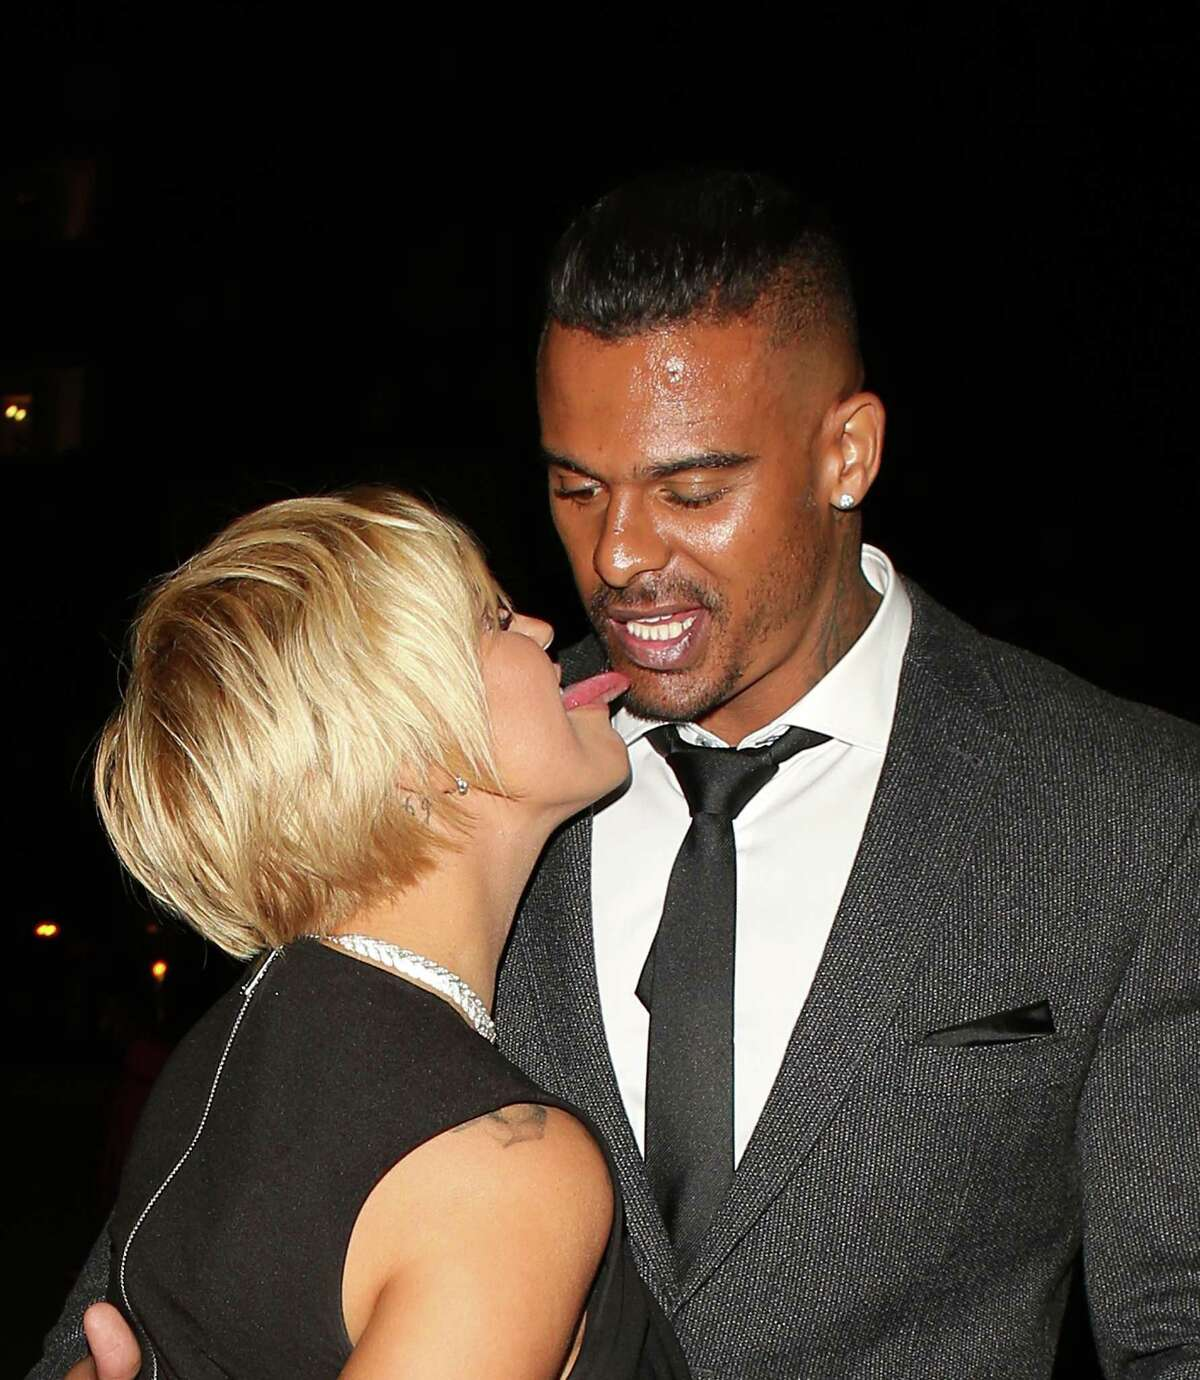 sheeshhhh. ... Kerry Katona and George Kay at the Reality TV awards on September 30, 2015 in London, England. (Photo by Mark Robert Milan/GC Images)After cruising this gallery check out the galleries for May - June - July - August.